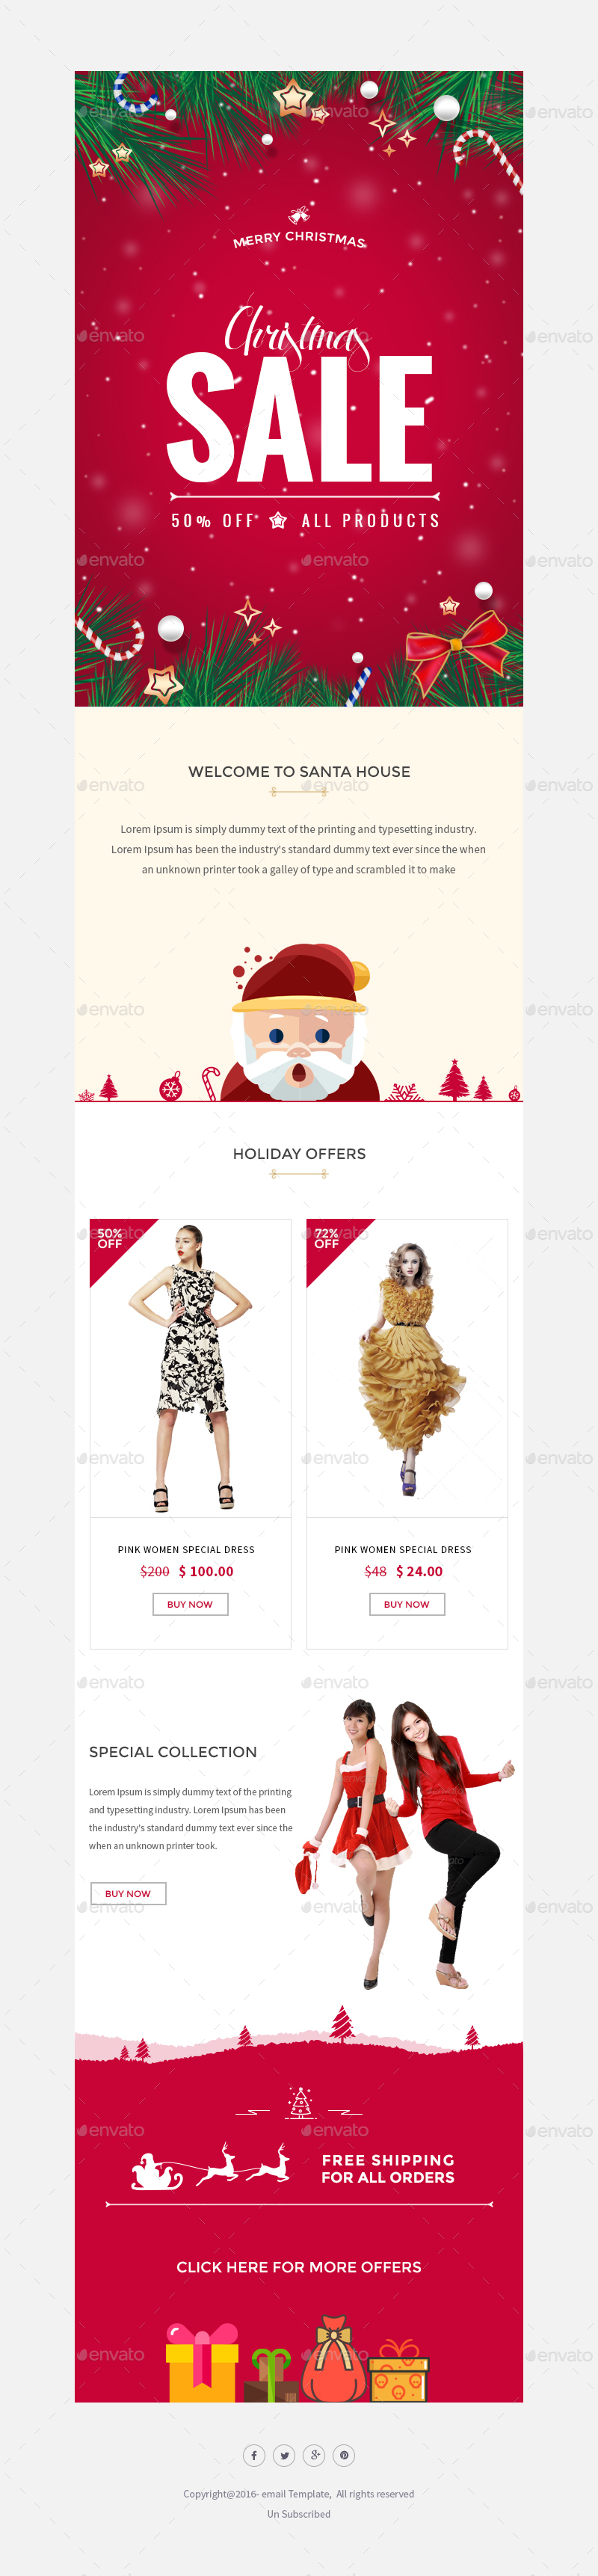 Christmas - Offers/Greetings Email Template PSD by Kalanidhithemes